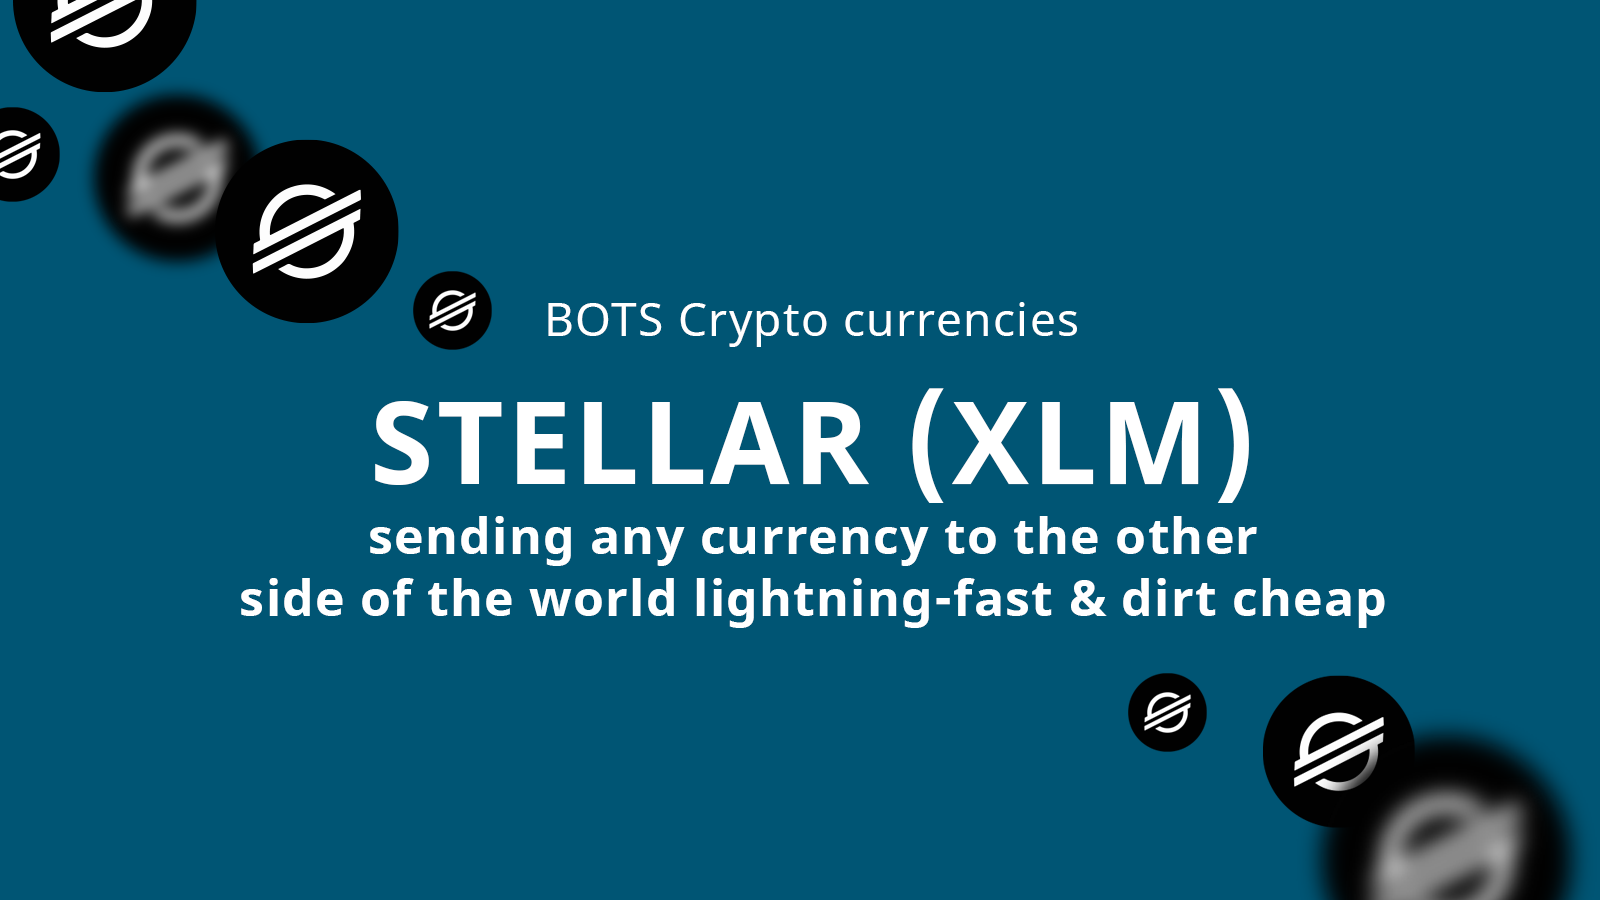 Stellar (XLM): Sending any currency to the other side of the world, lightning-fast and dirtcheap